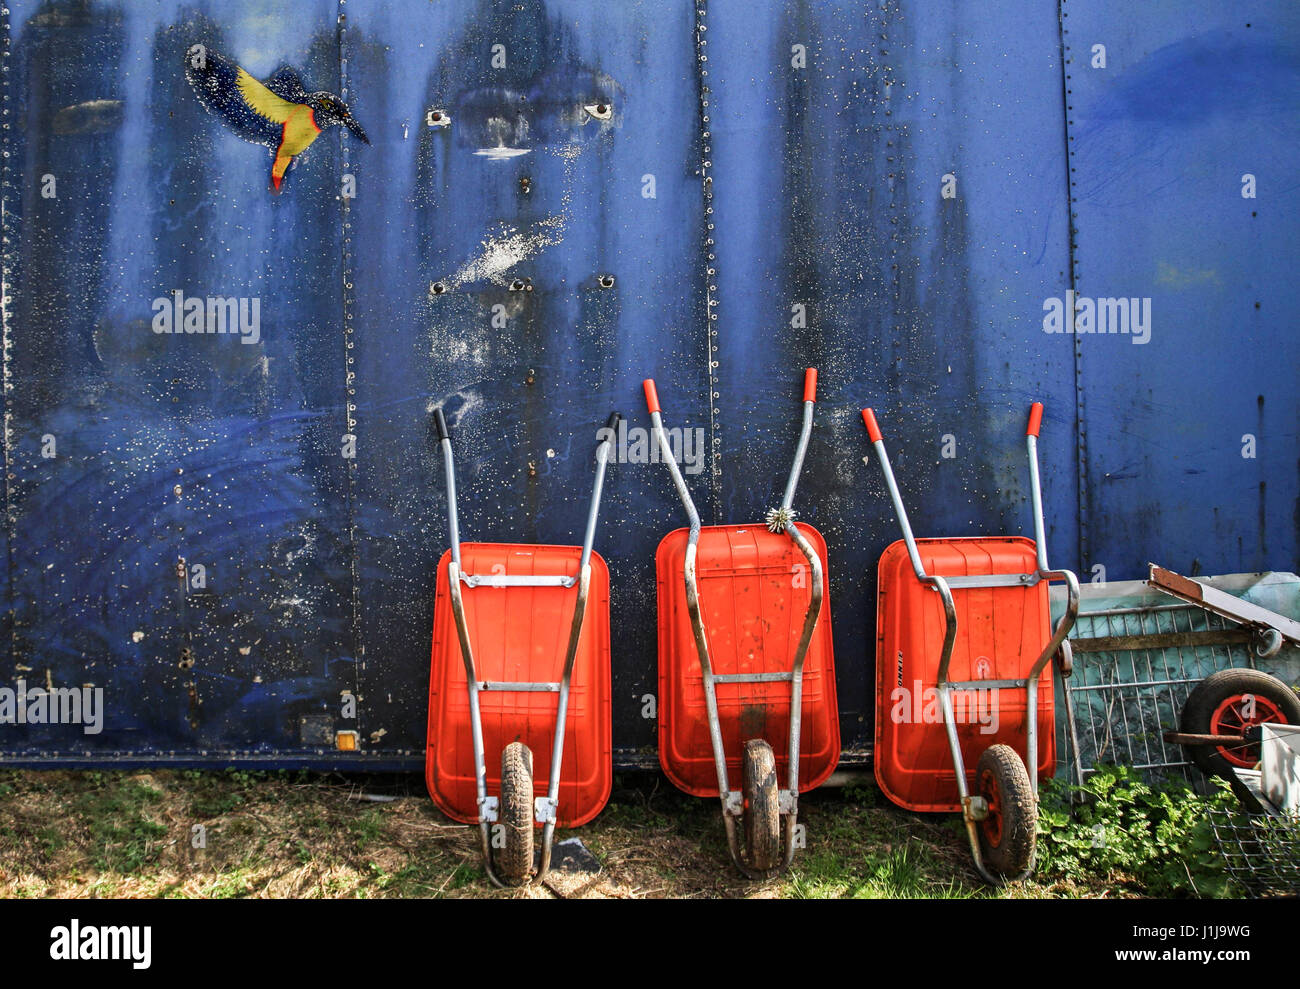 3 parked wheelbarrows and one kingfisher in an allotment - Stock Image